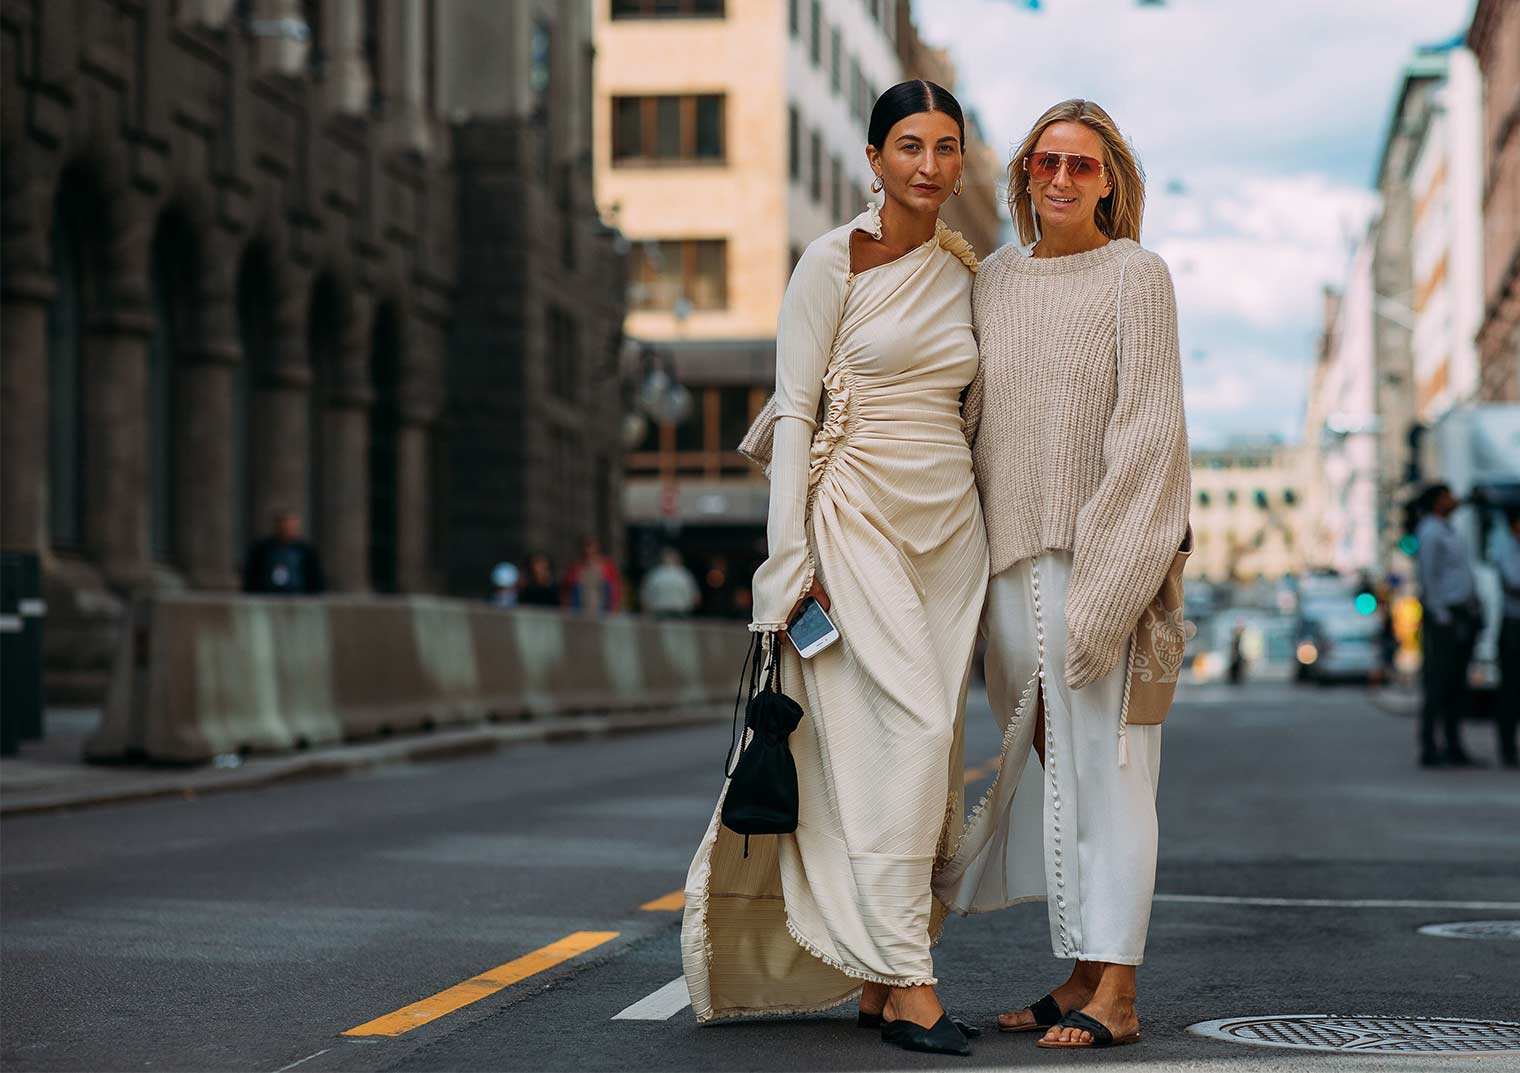 Forum on this topic: Street Chic: Fashion Week, street-chic-fashion-week/